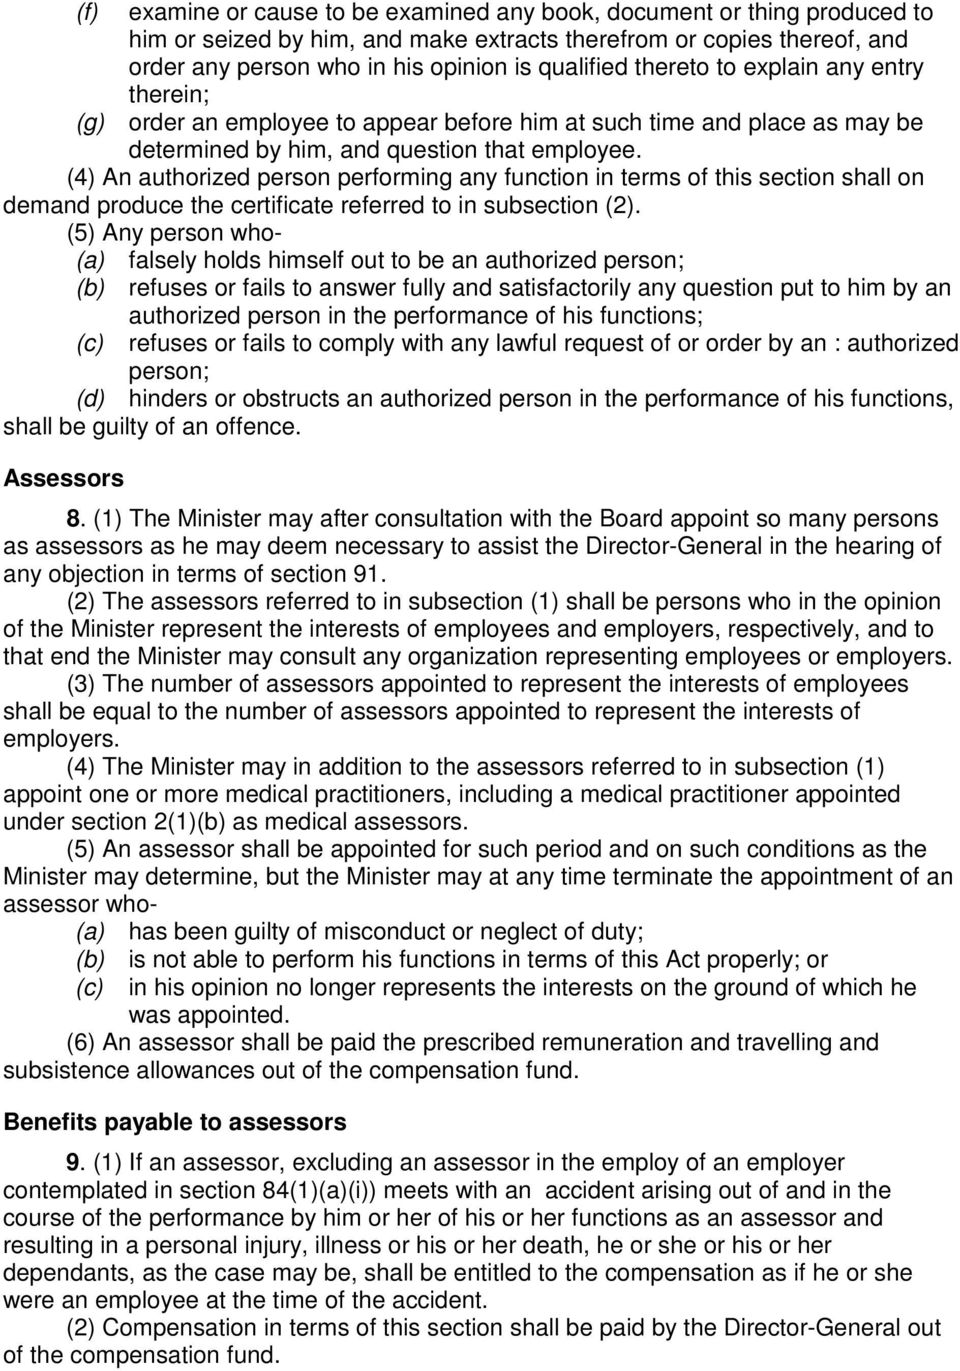 (4) An authorized person performing any function in terms of this section shall on demand produce the certificate referred to in subsection (2).